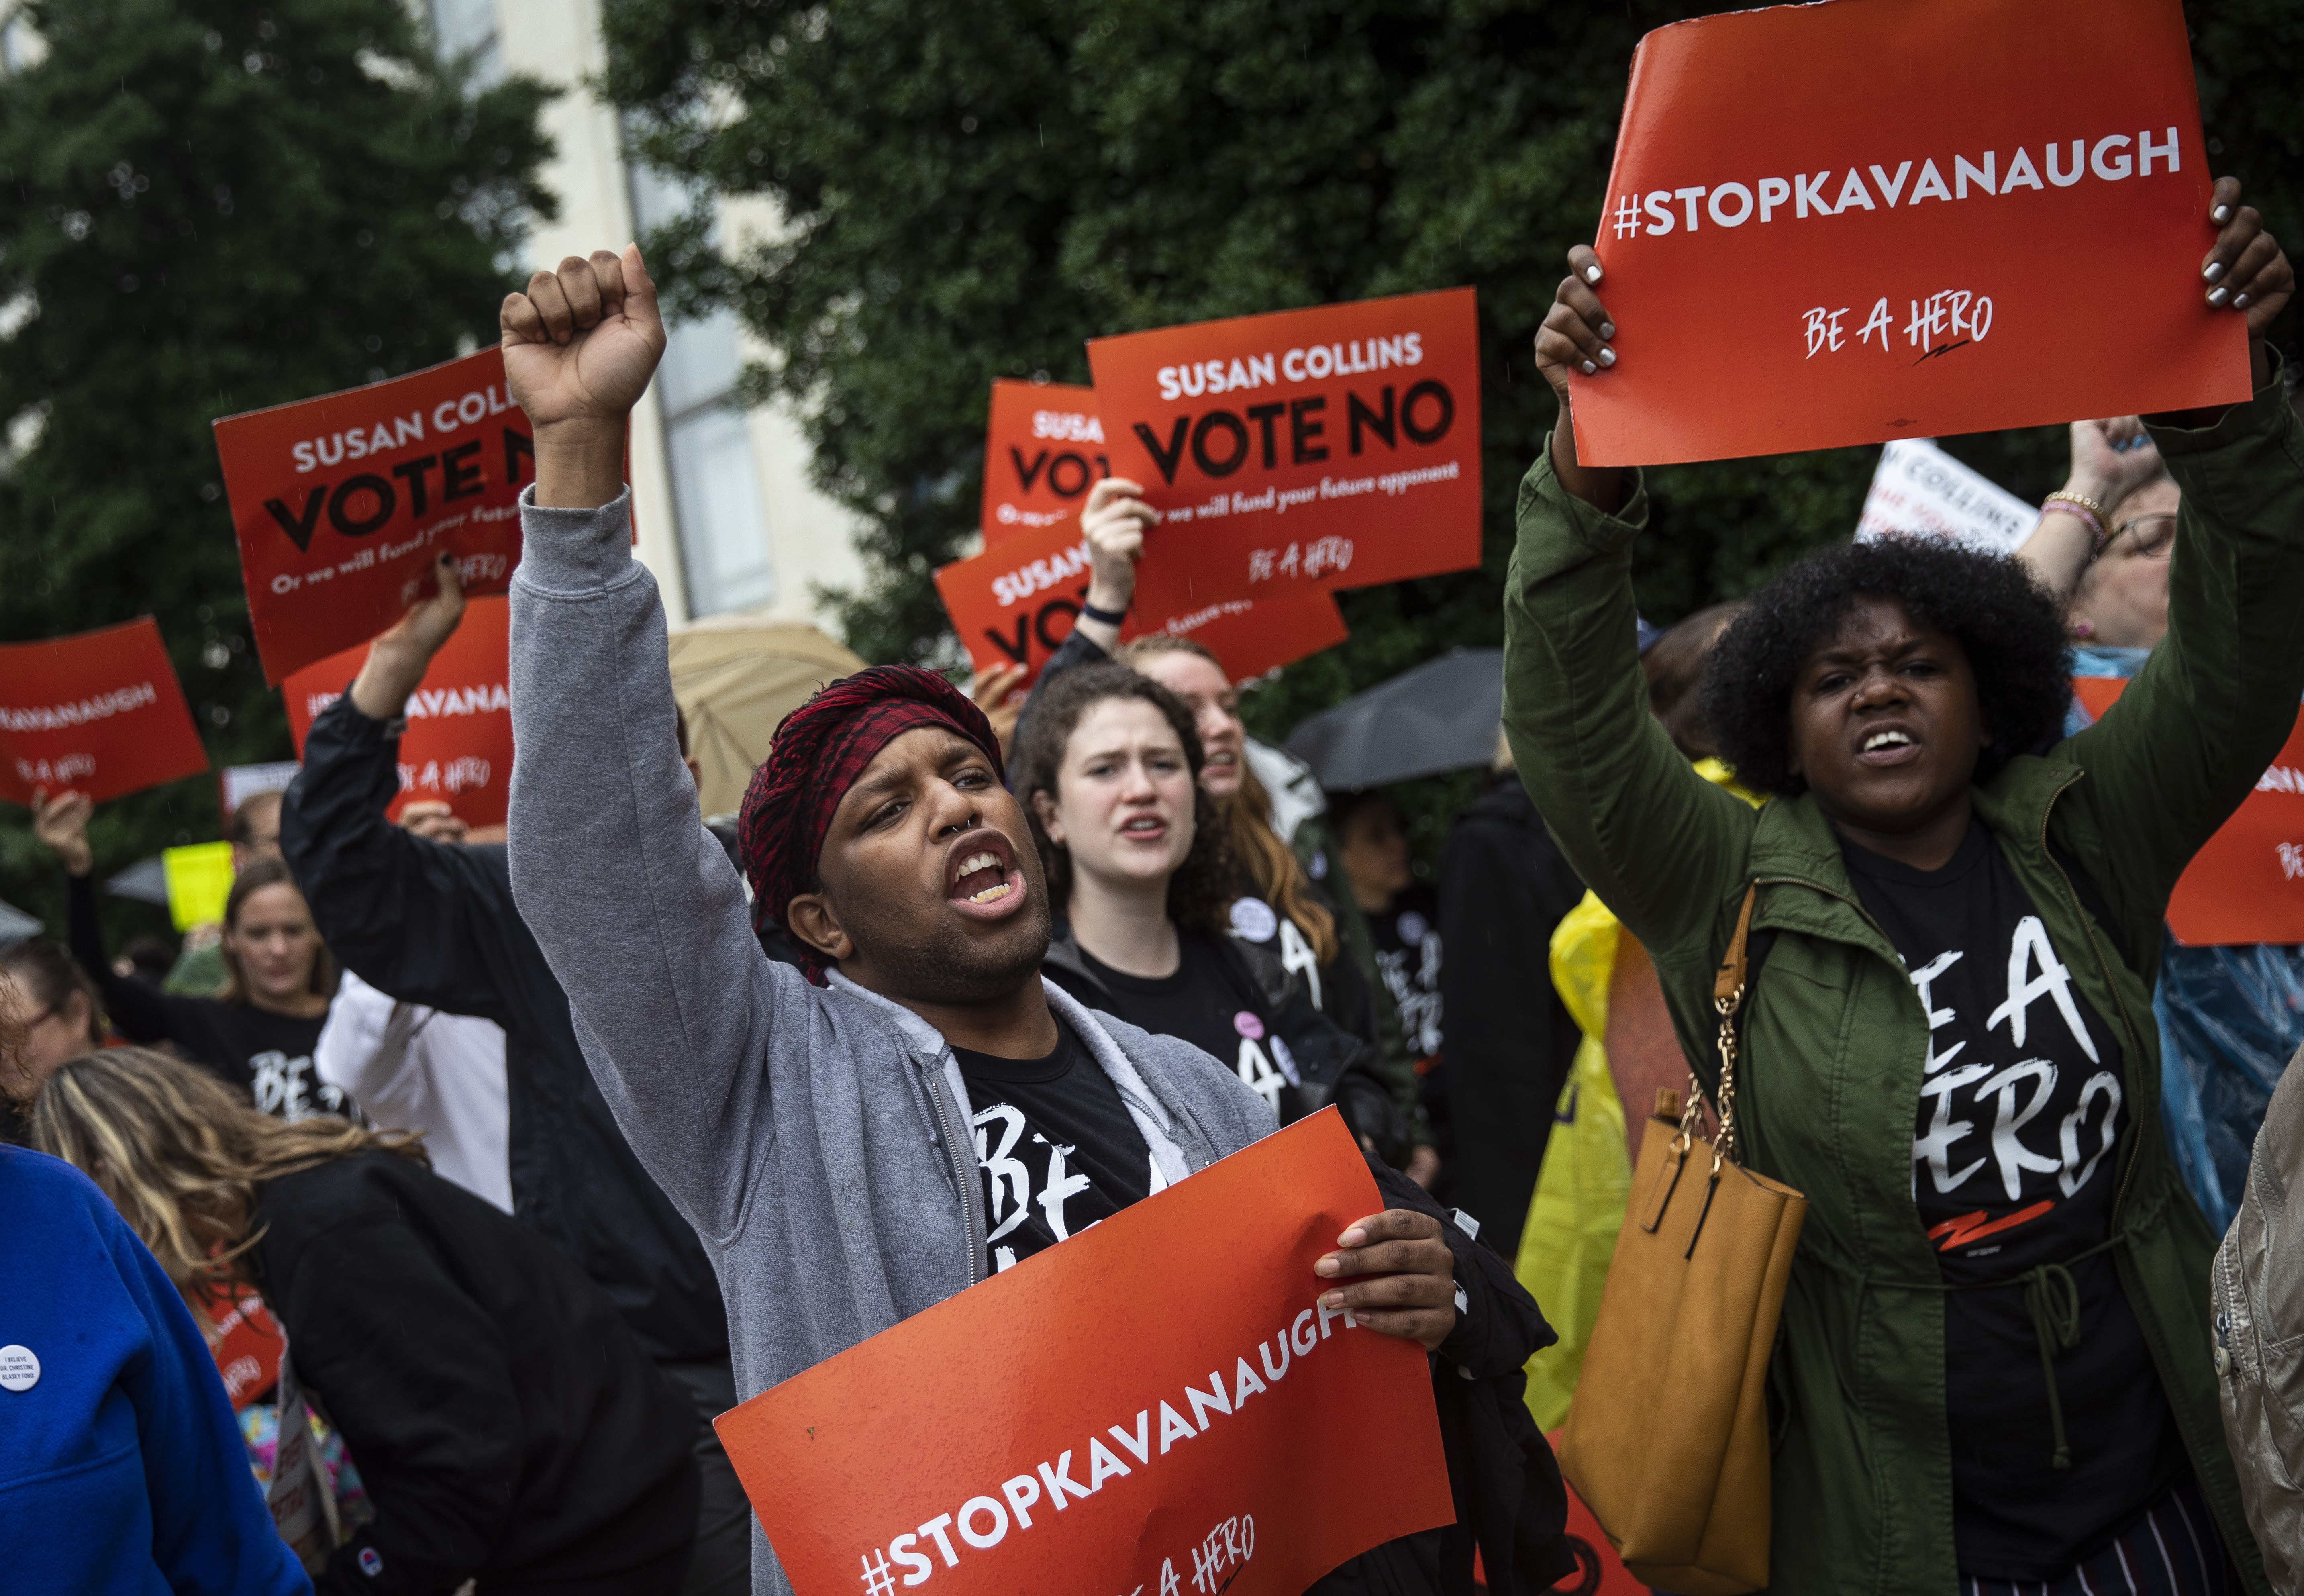 Protestors rally against Supreme Court nominee Judge Brett Kavanaugh as they make their way from the Supreme Court to the Hart Senate Office Building on Capitol Hill on Monday.